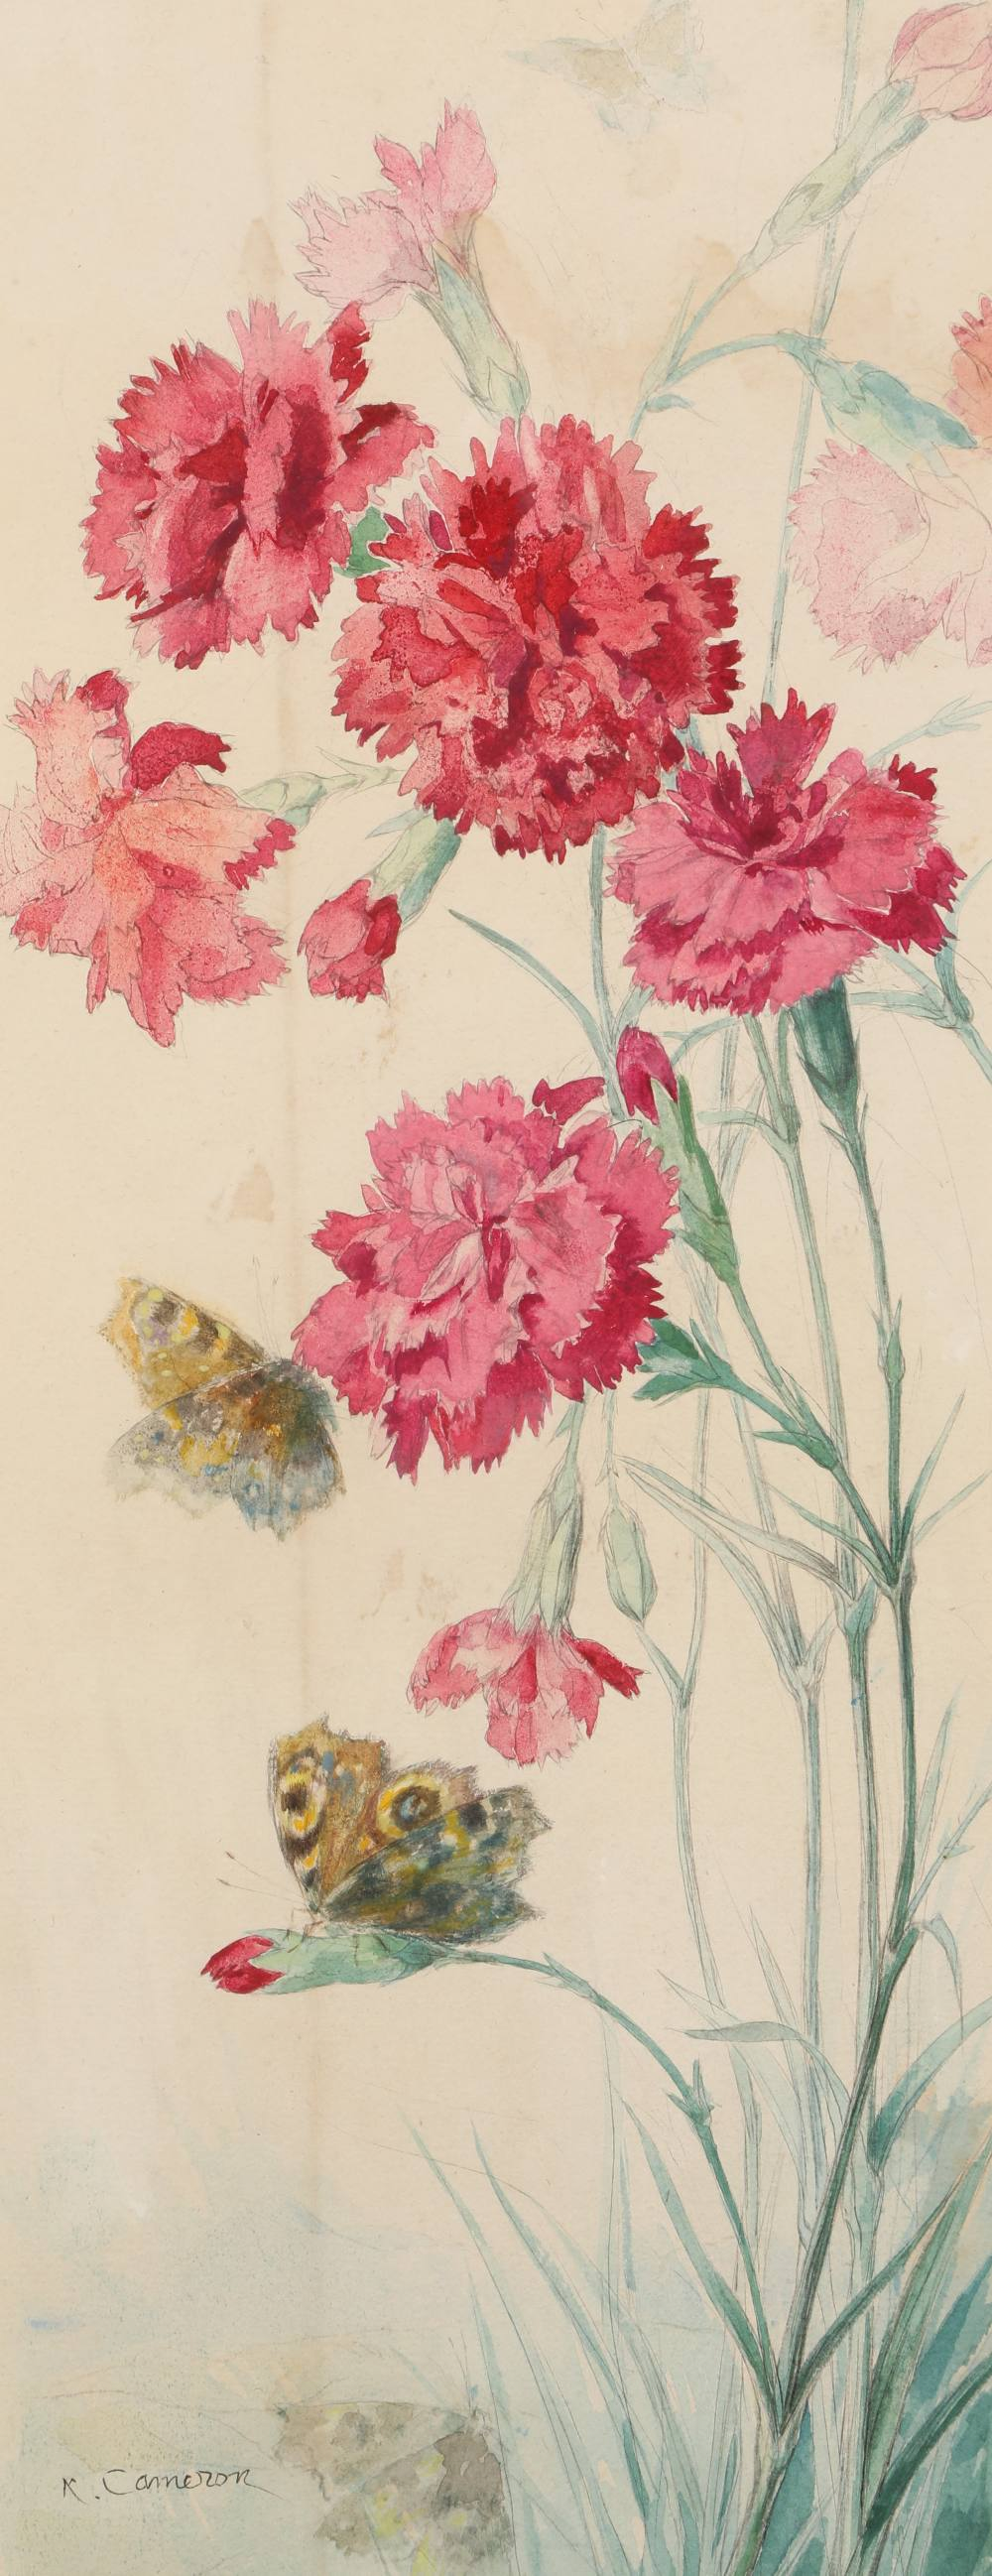 Katherine Cameron RE RSW (Scottish 1874 - 1965) ARR Framed watercolour, signed 'Wild Carnations with